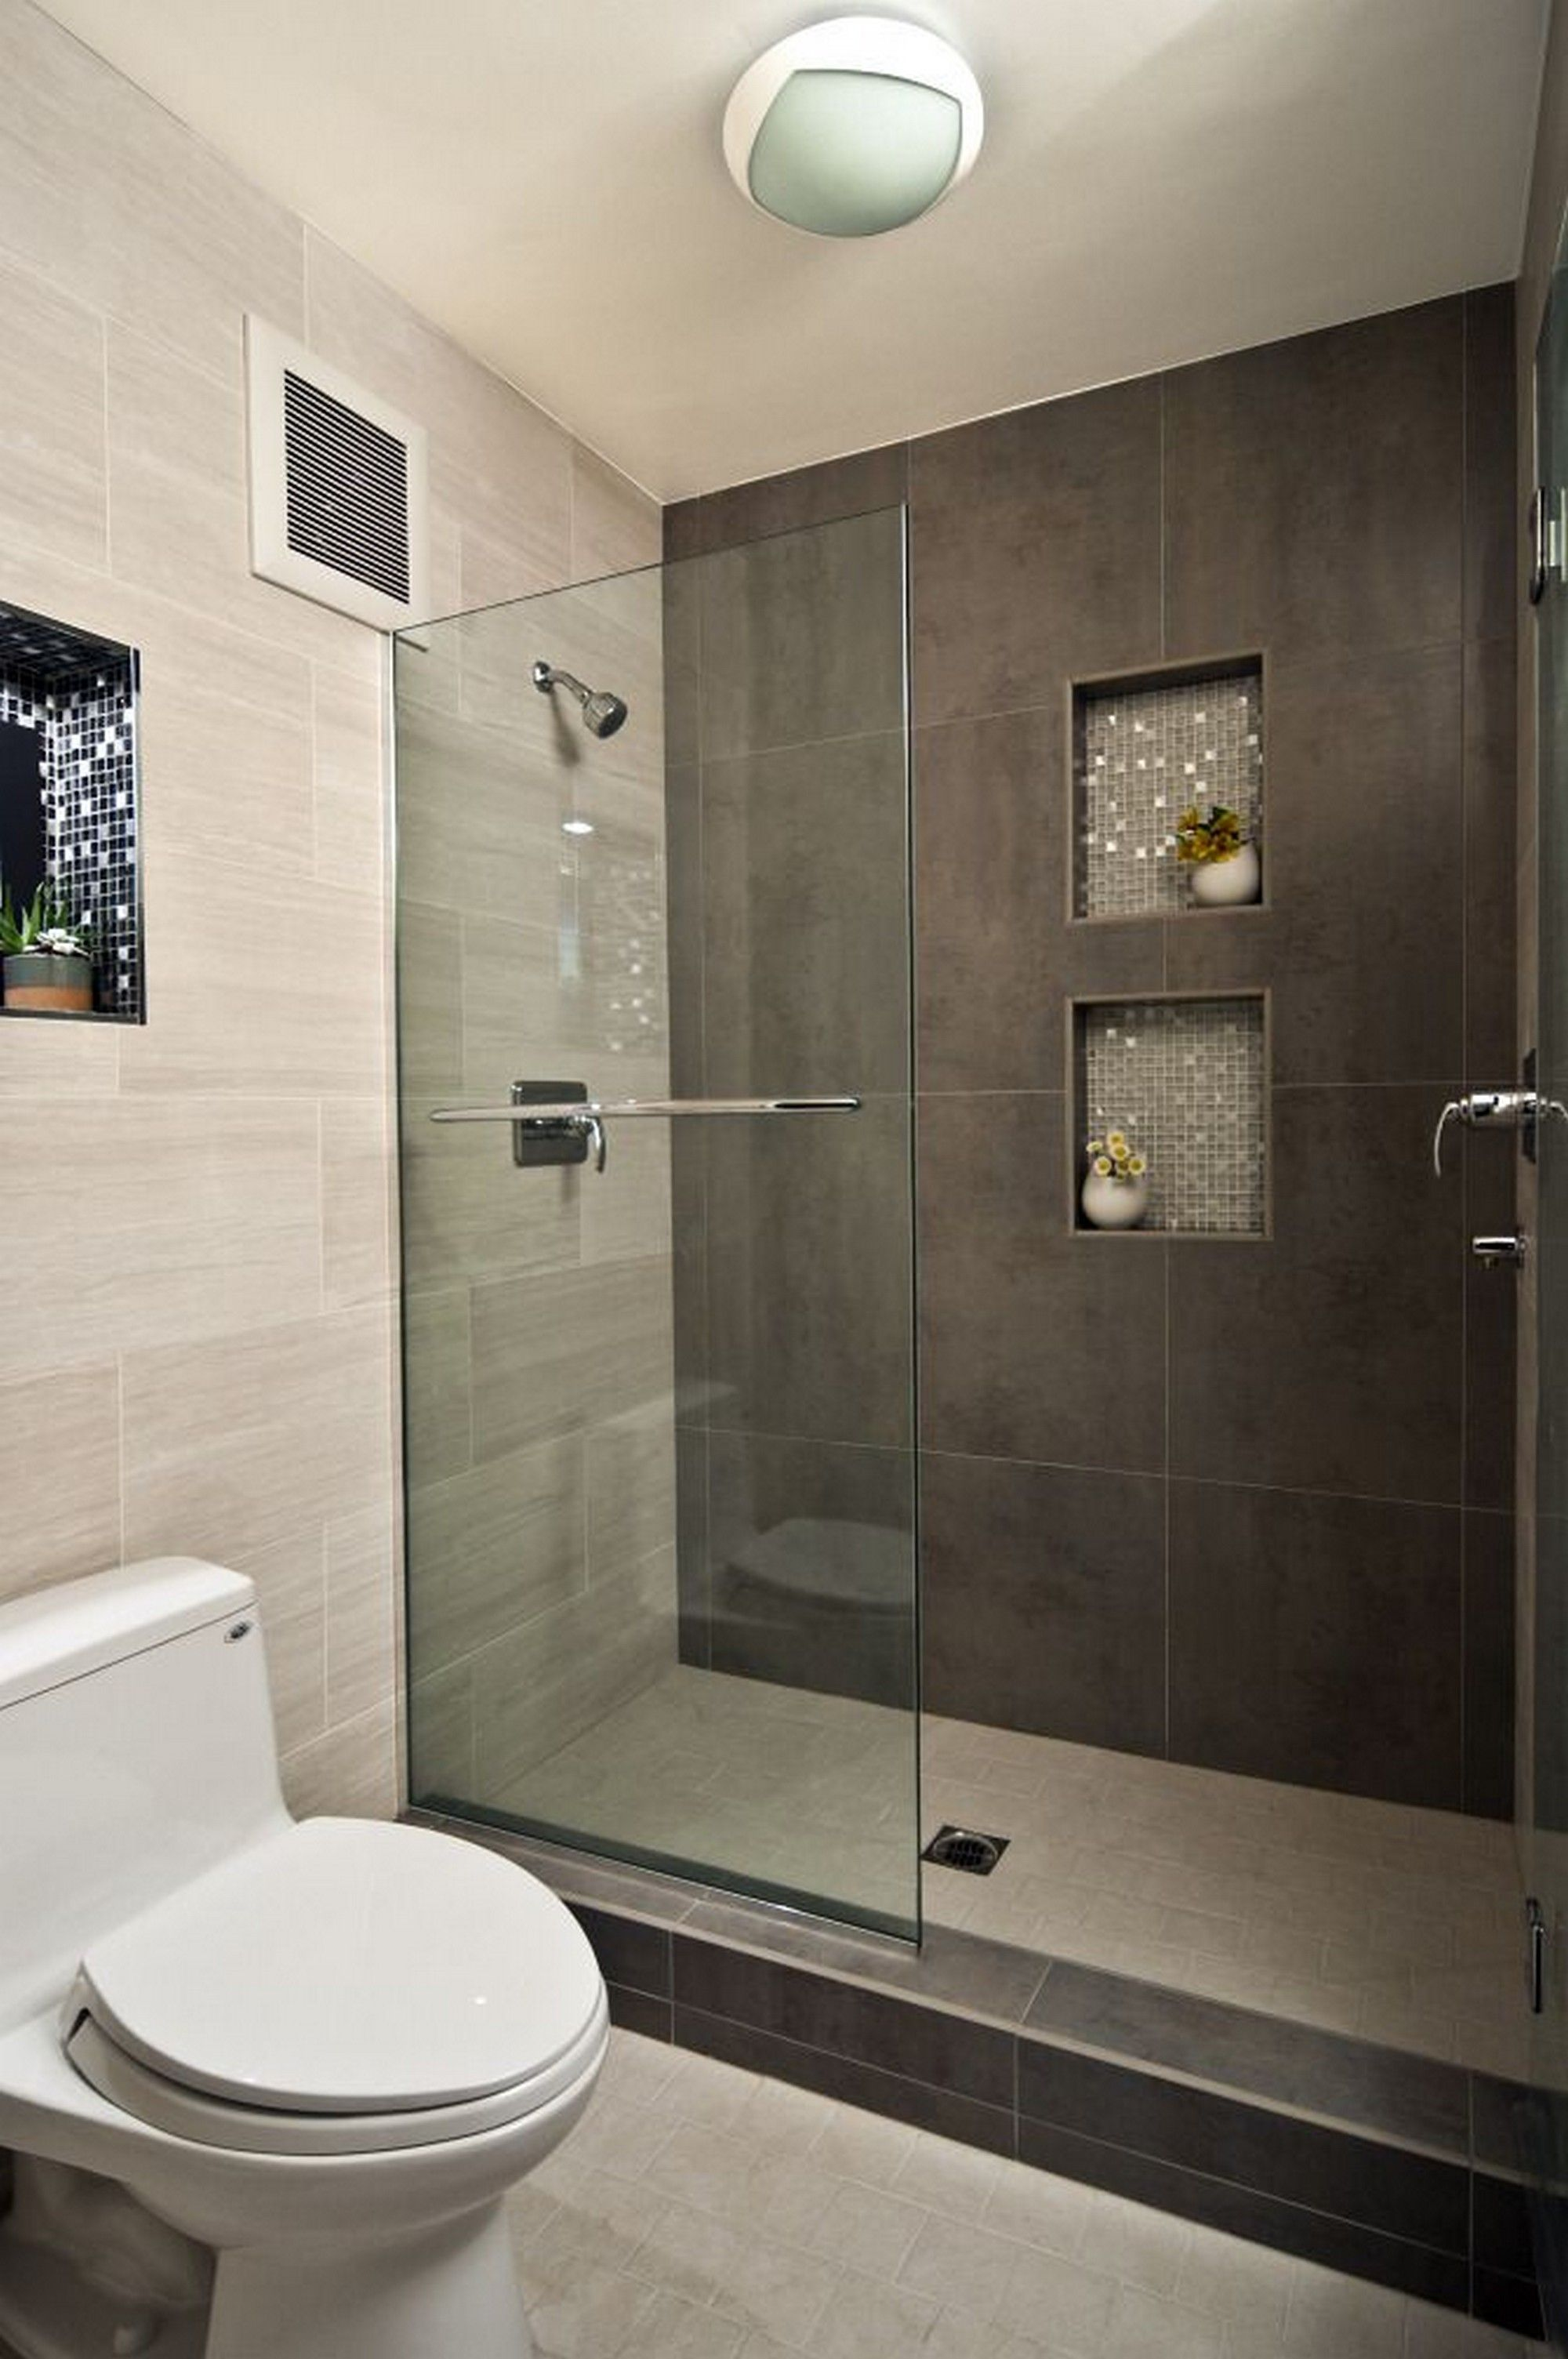 Bathroom Walk In Shower Ideas SmallBathroomIdeaswithWalkin - Best small bathroom renovations